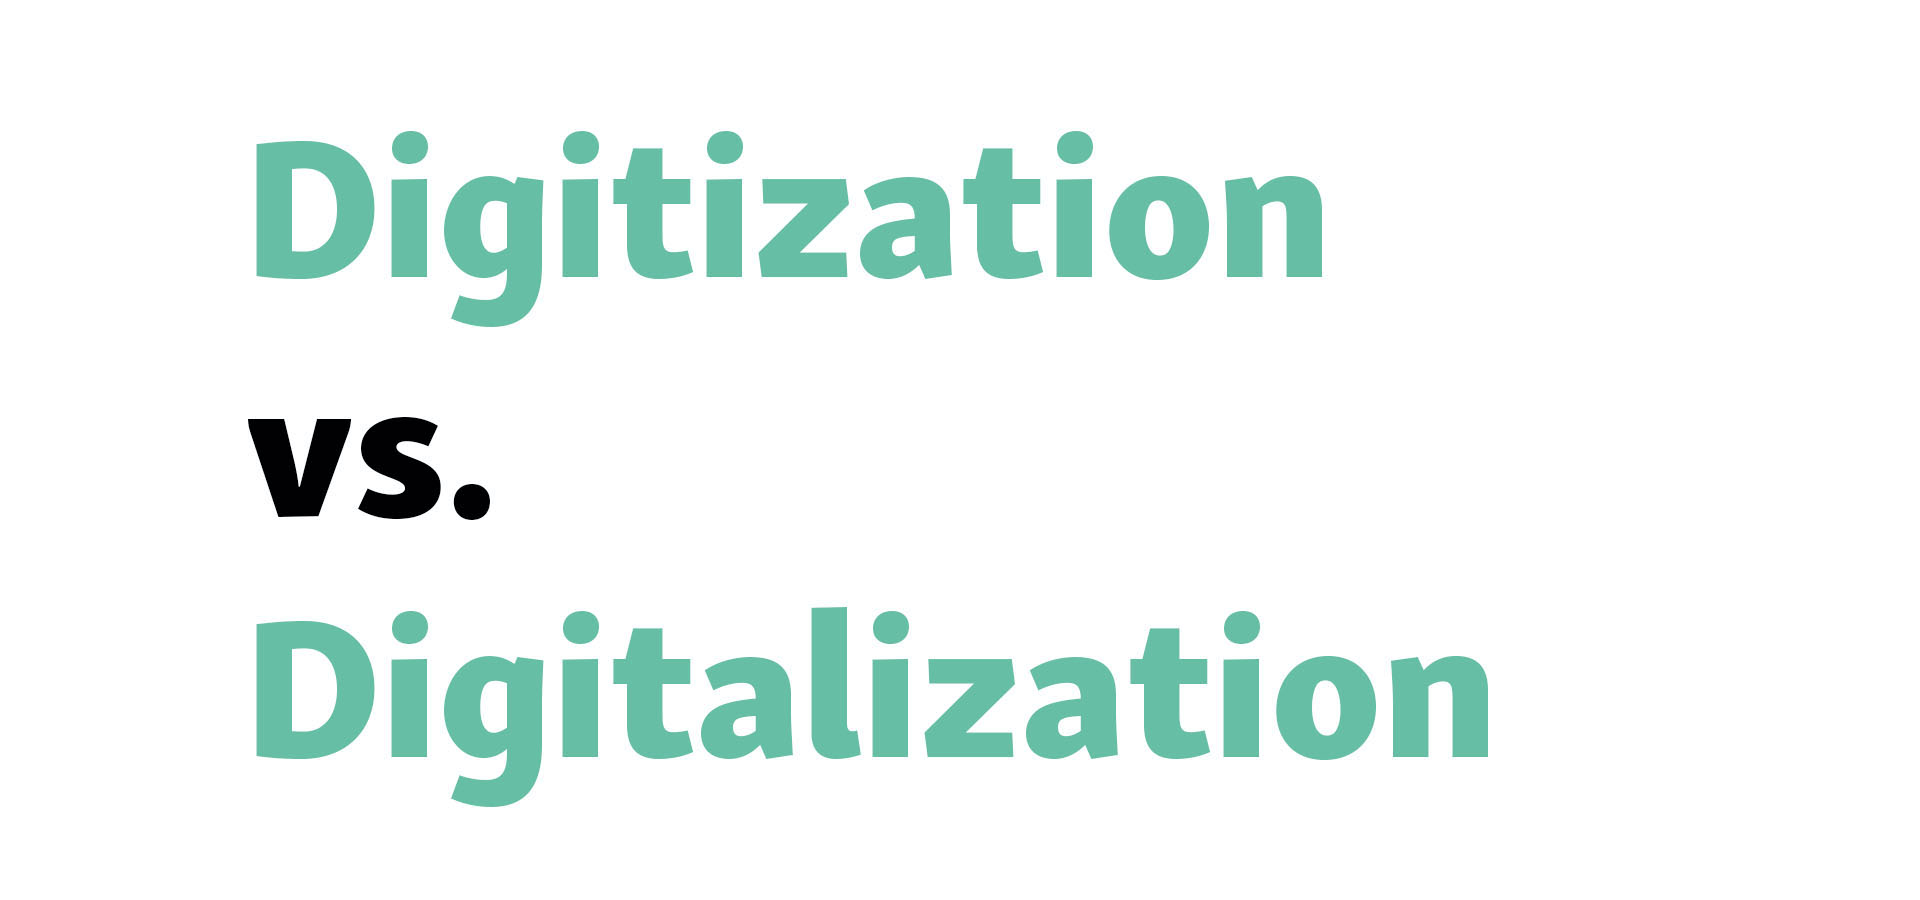 Digitization vs. Digitalization